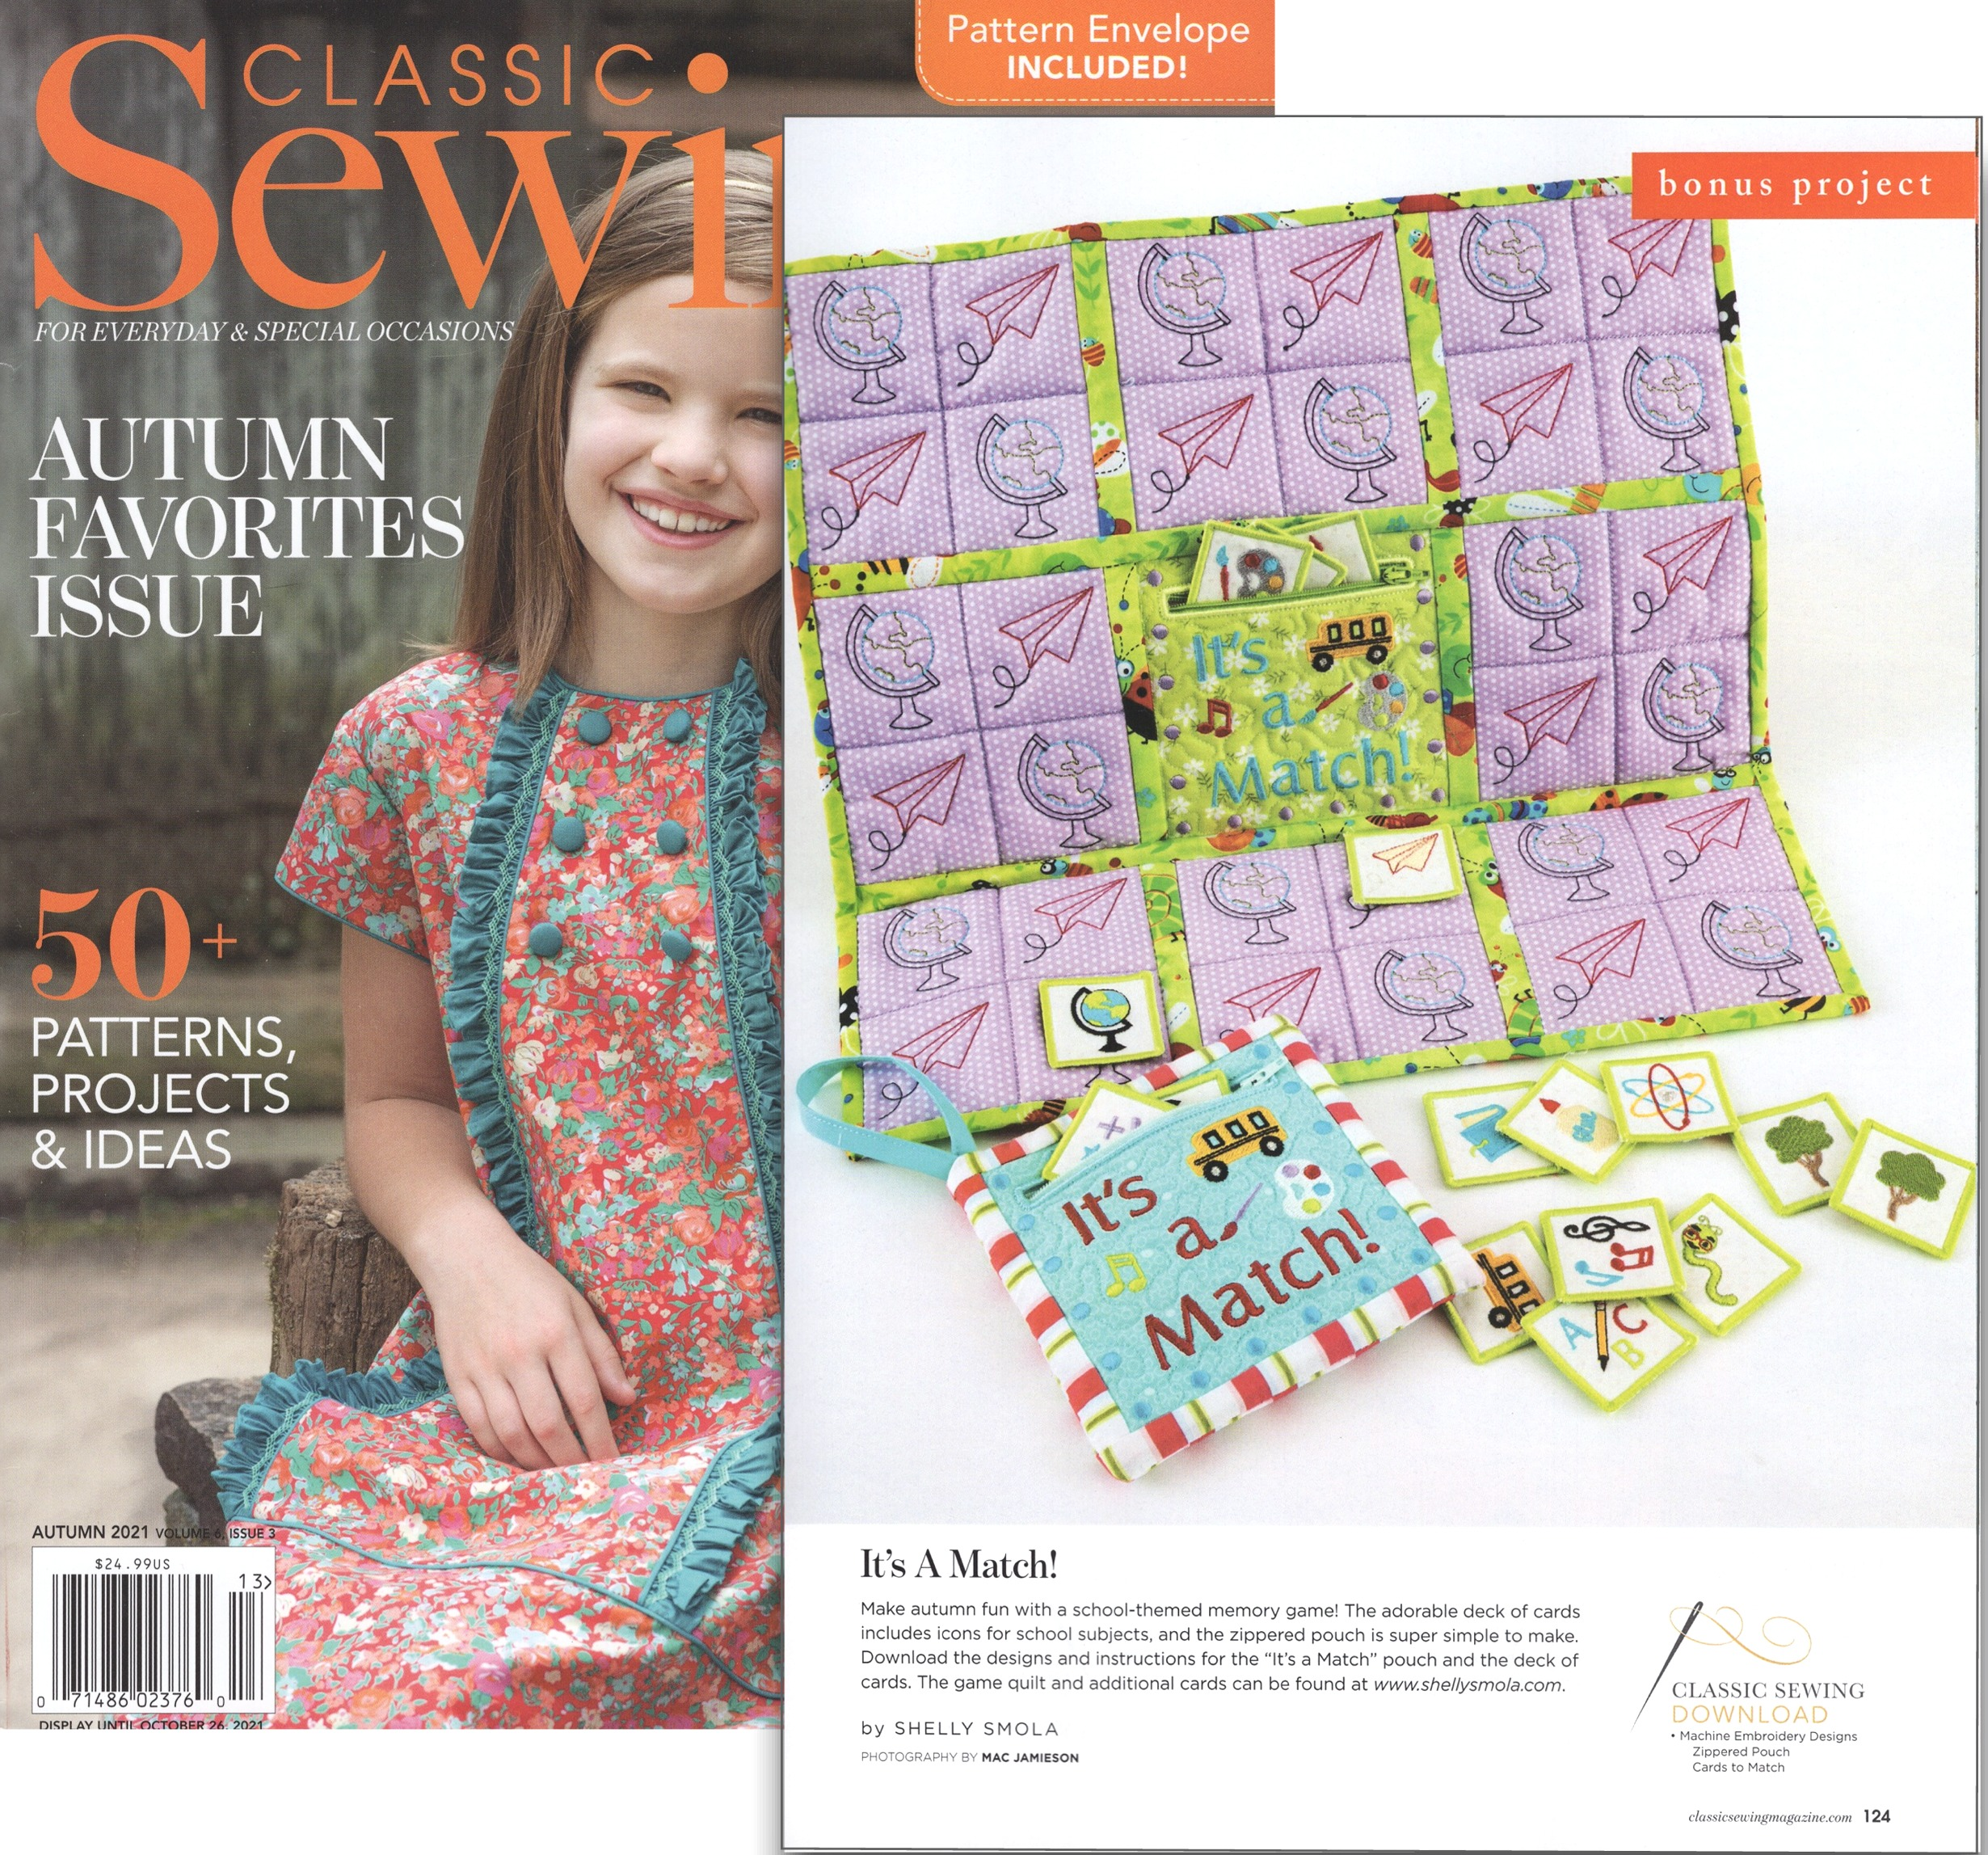 Classic Sewing Autumn 2021